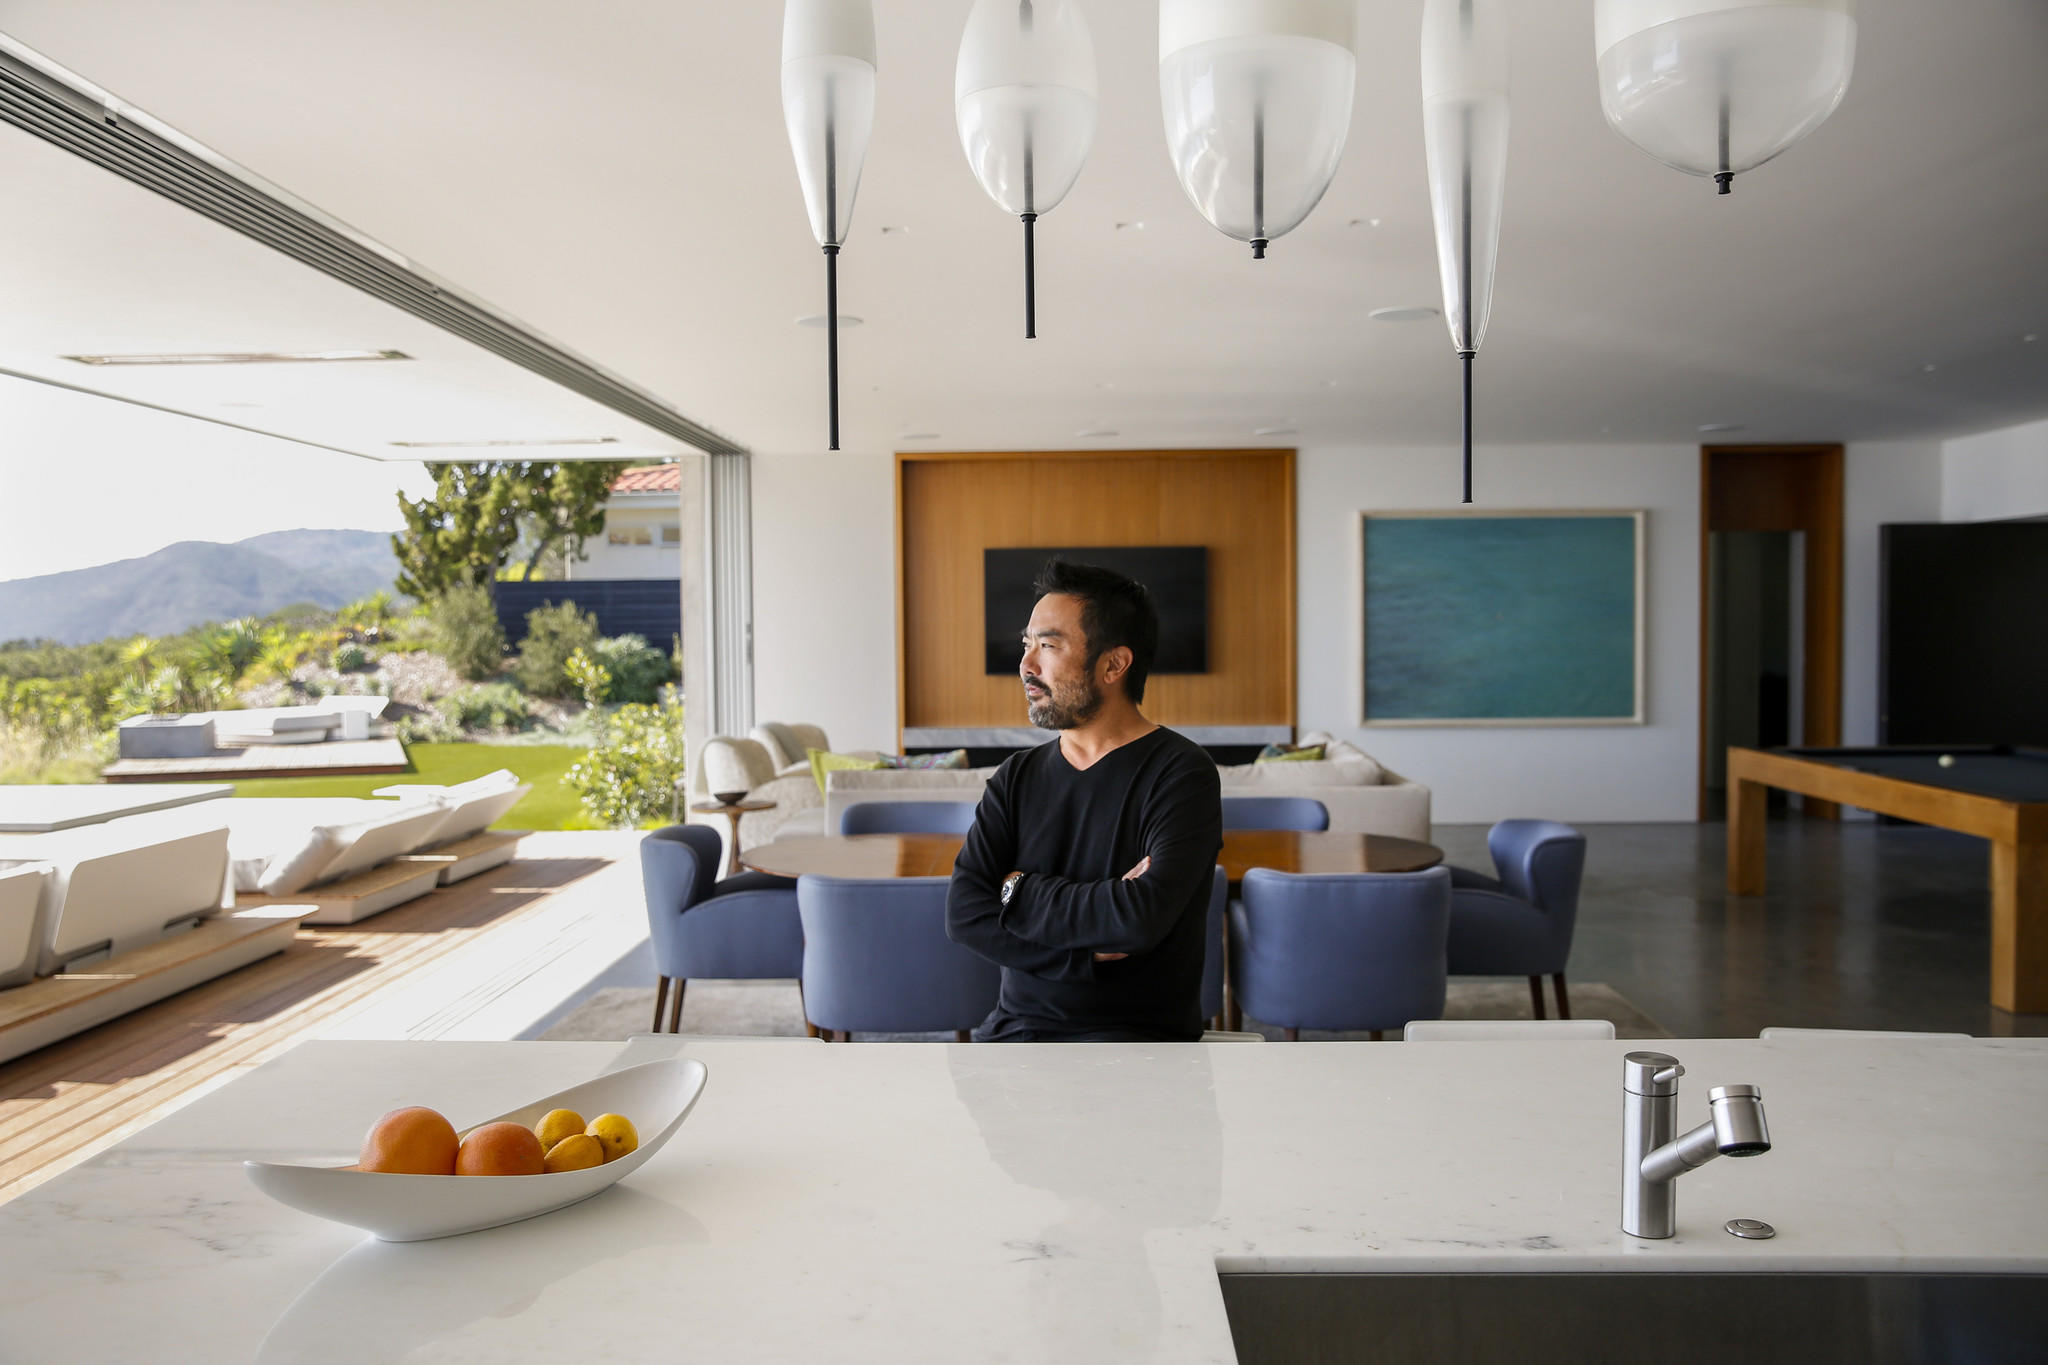 Takashi Yanai, FAIA design director of the residential studio at the firm Ehrlich Yanai Rhee Chaney Architects, sits for a portrait inside his recent remodel.